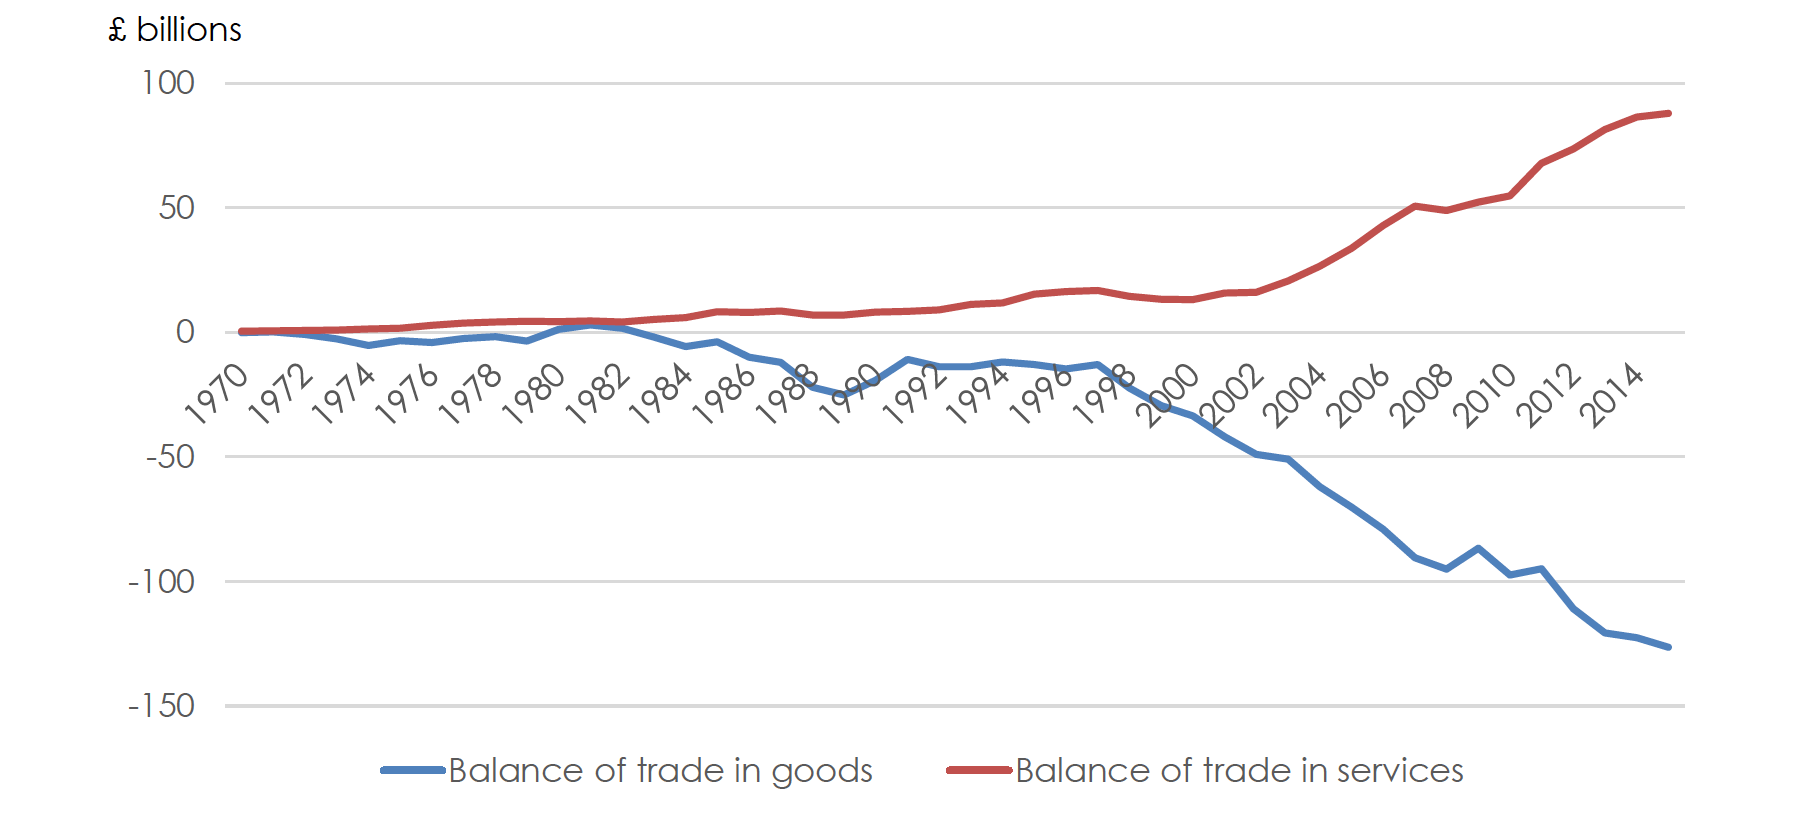 uk-balance-of-trade-in-goods-and-services.png